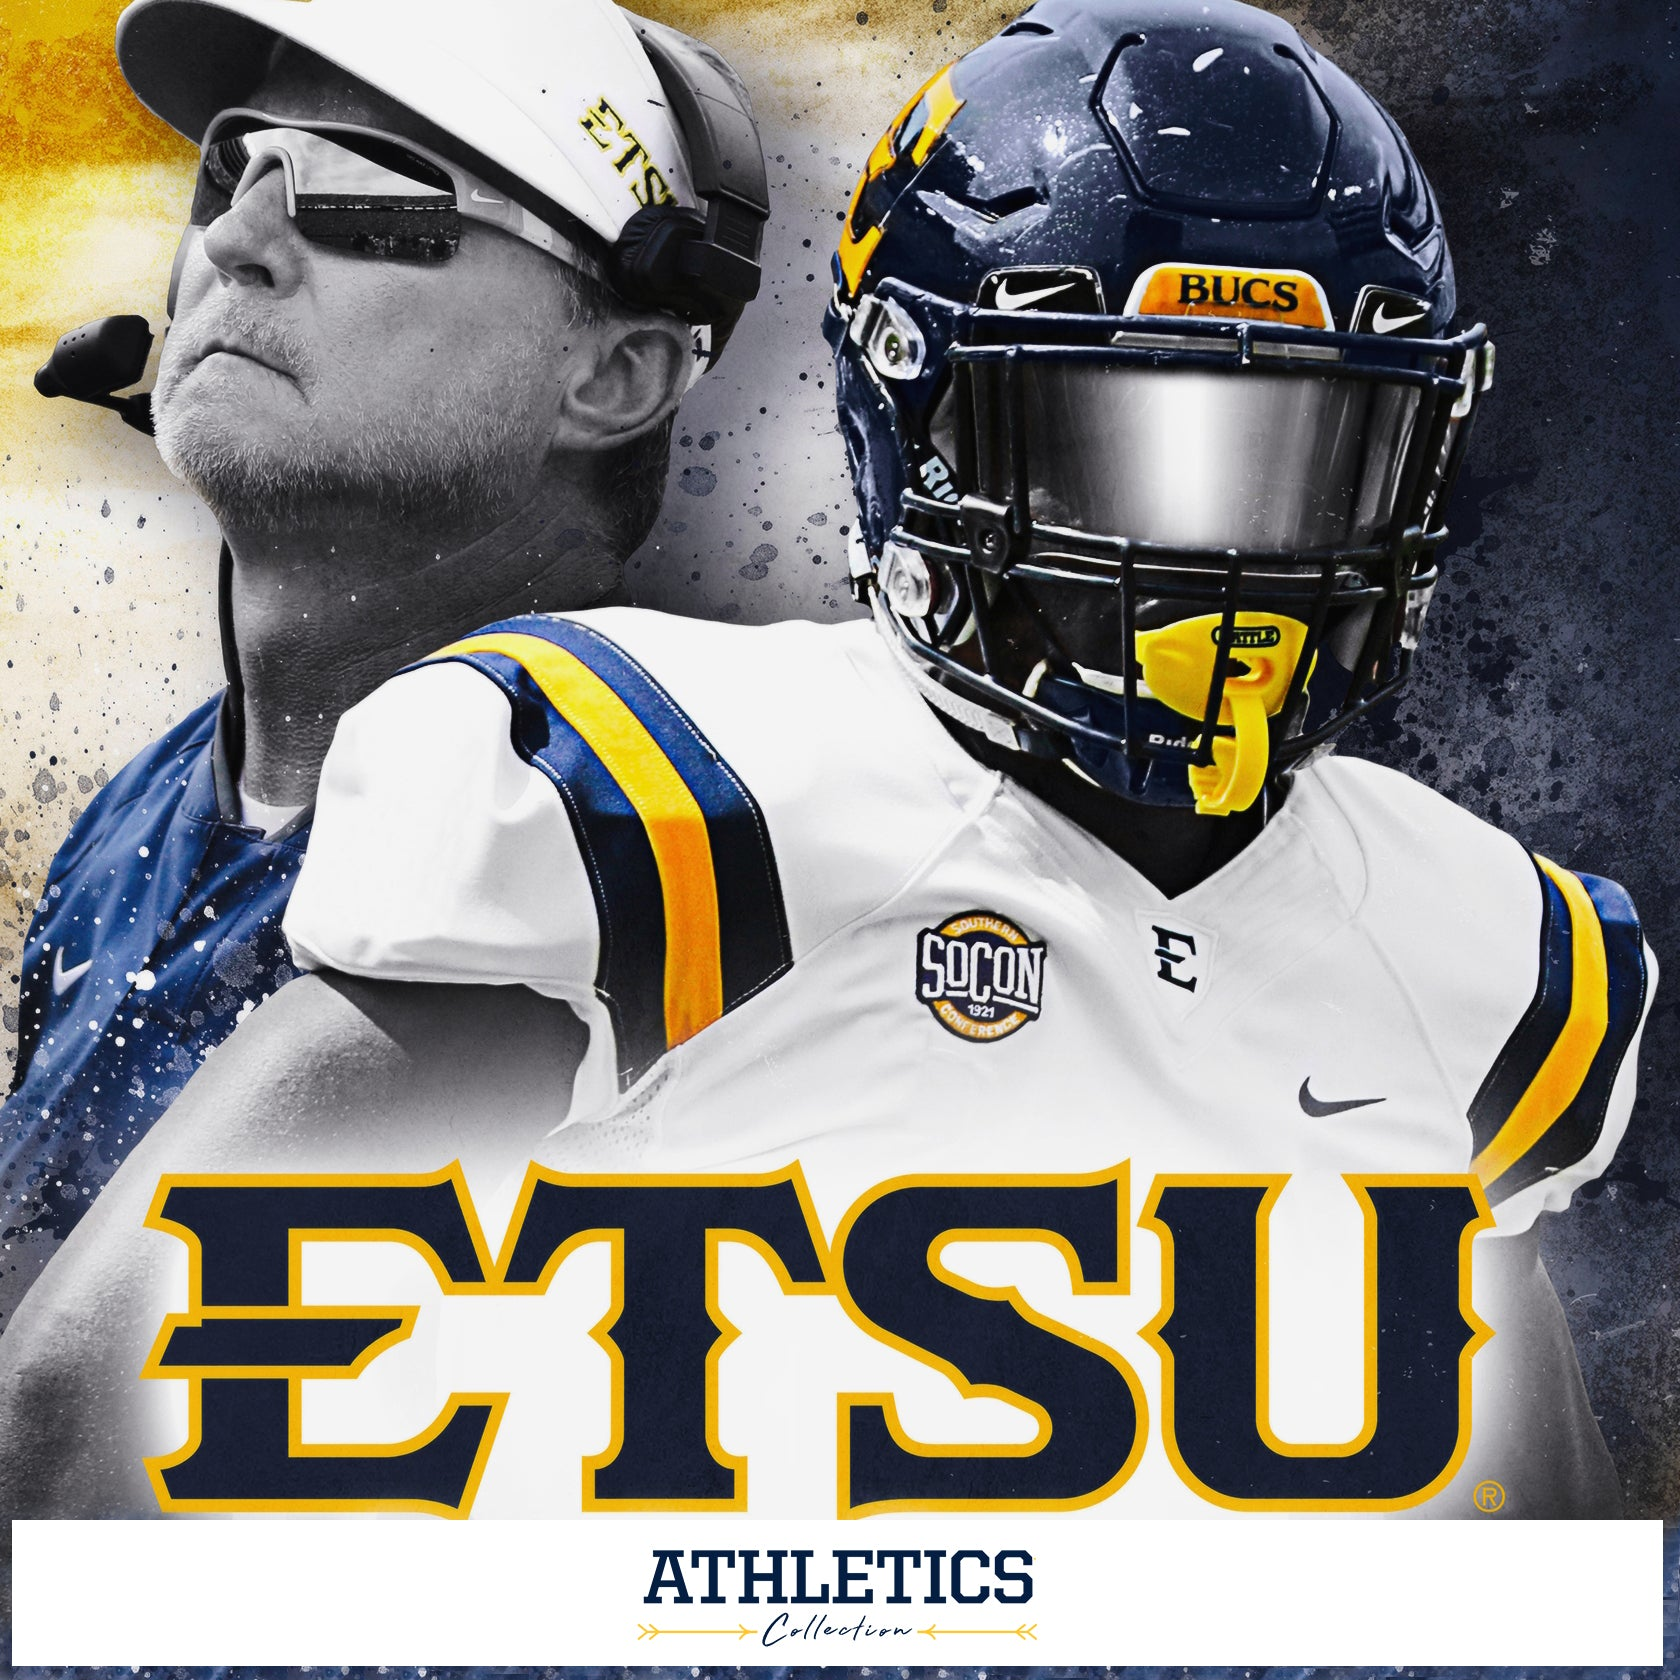 ETSU - Athletics